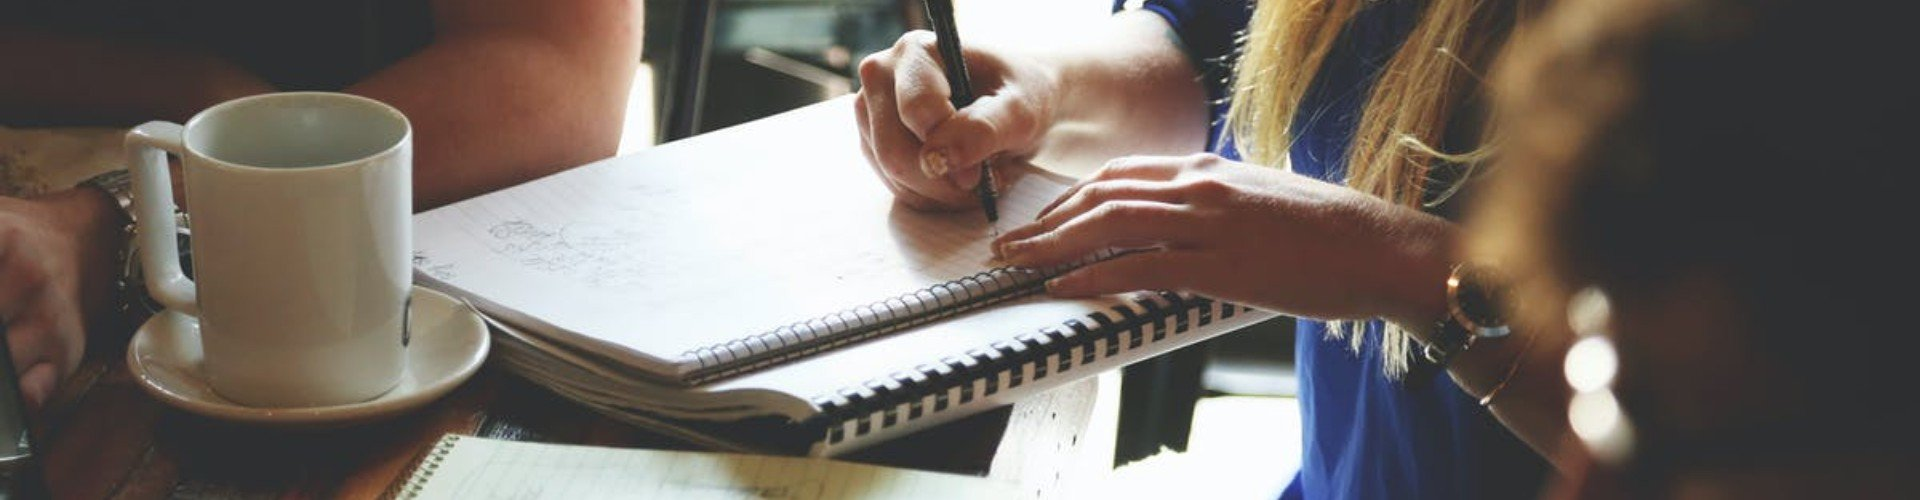 Scribe Cover Letter: Sample & Writing Guide